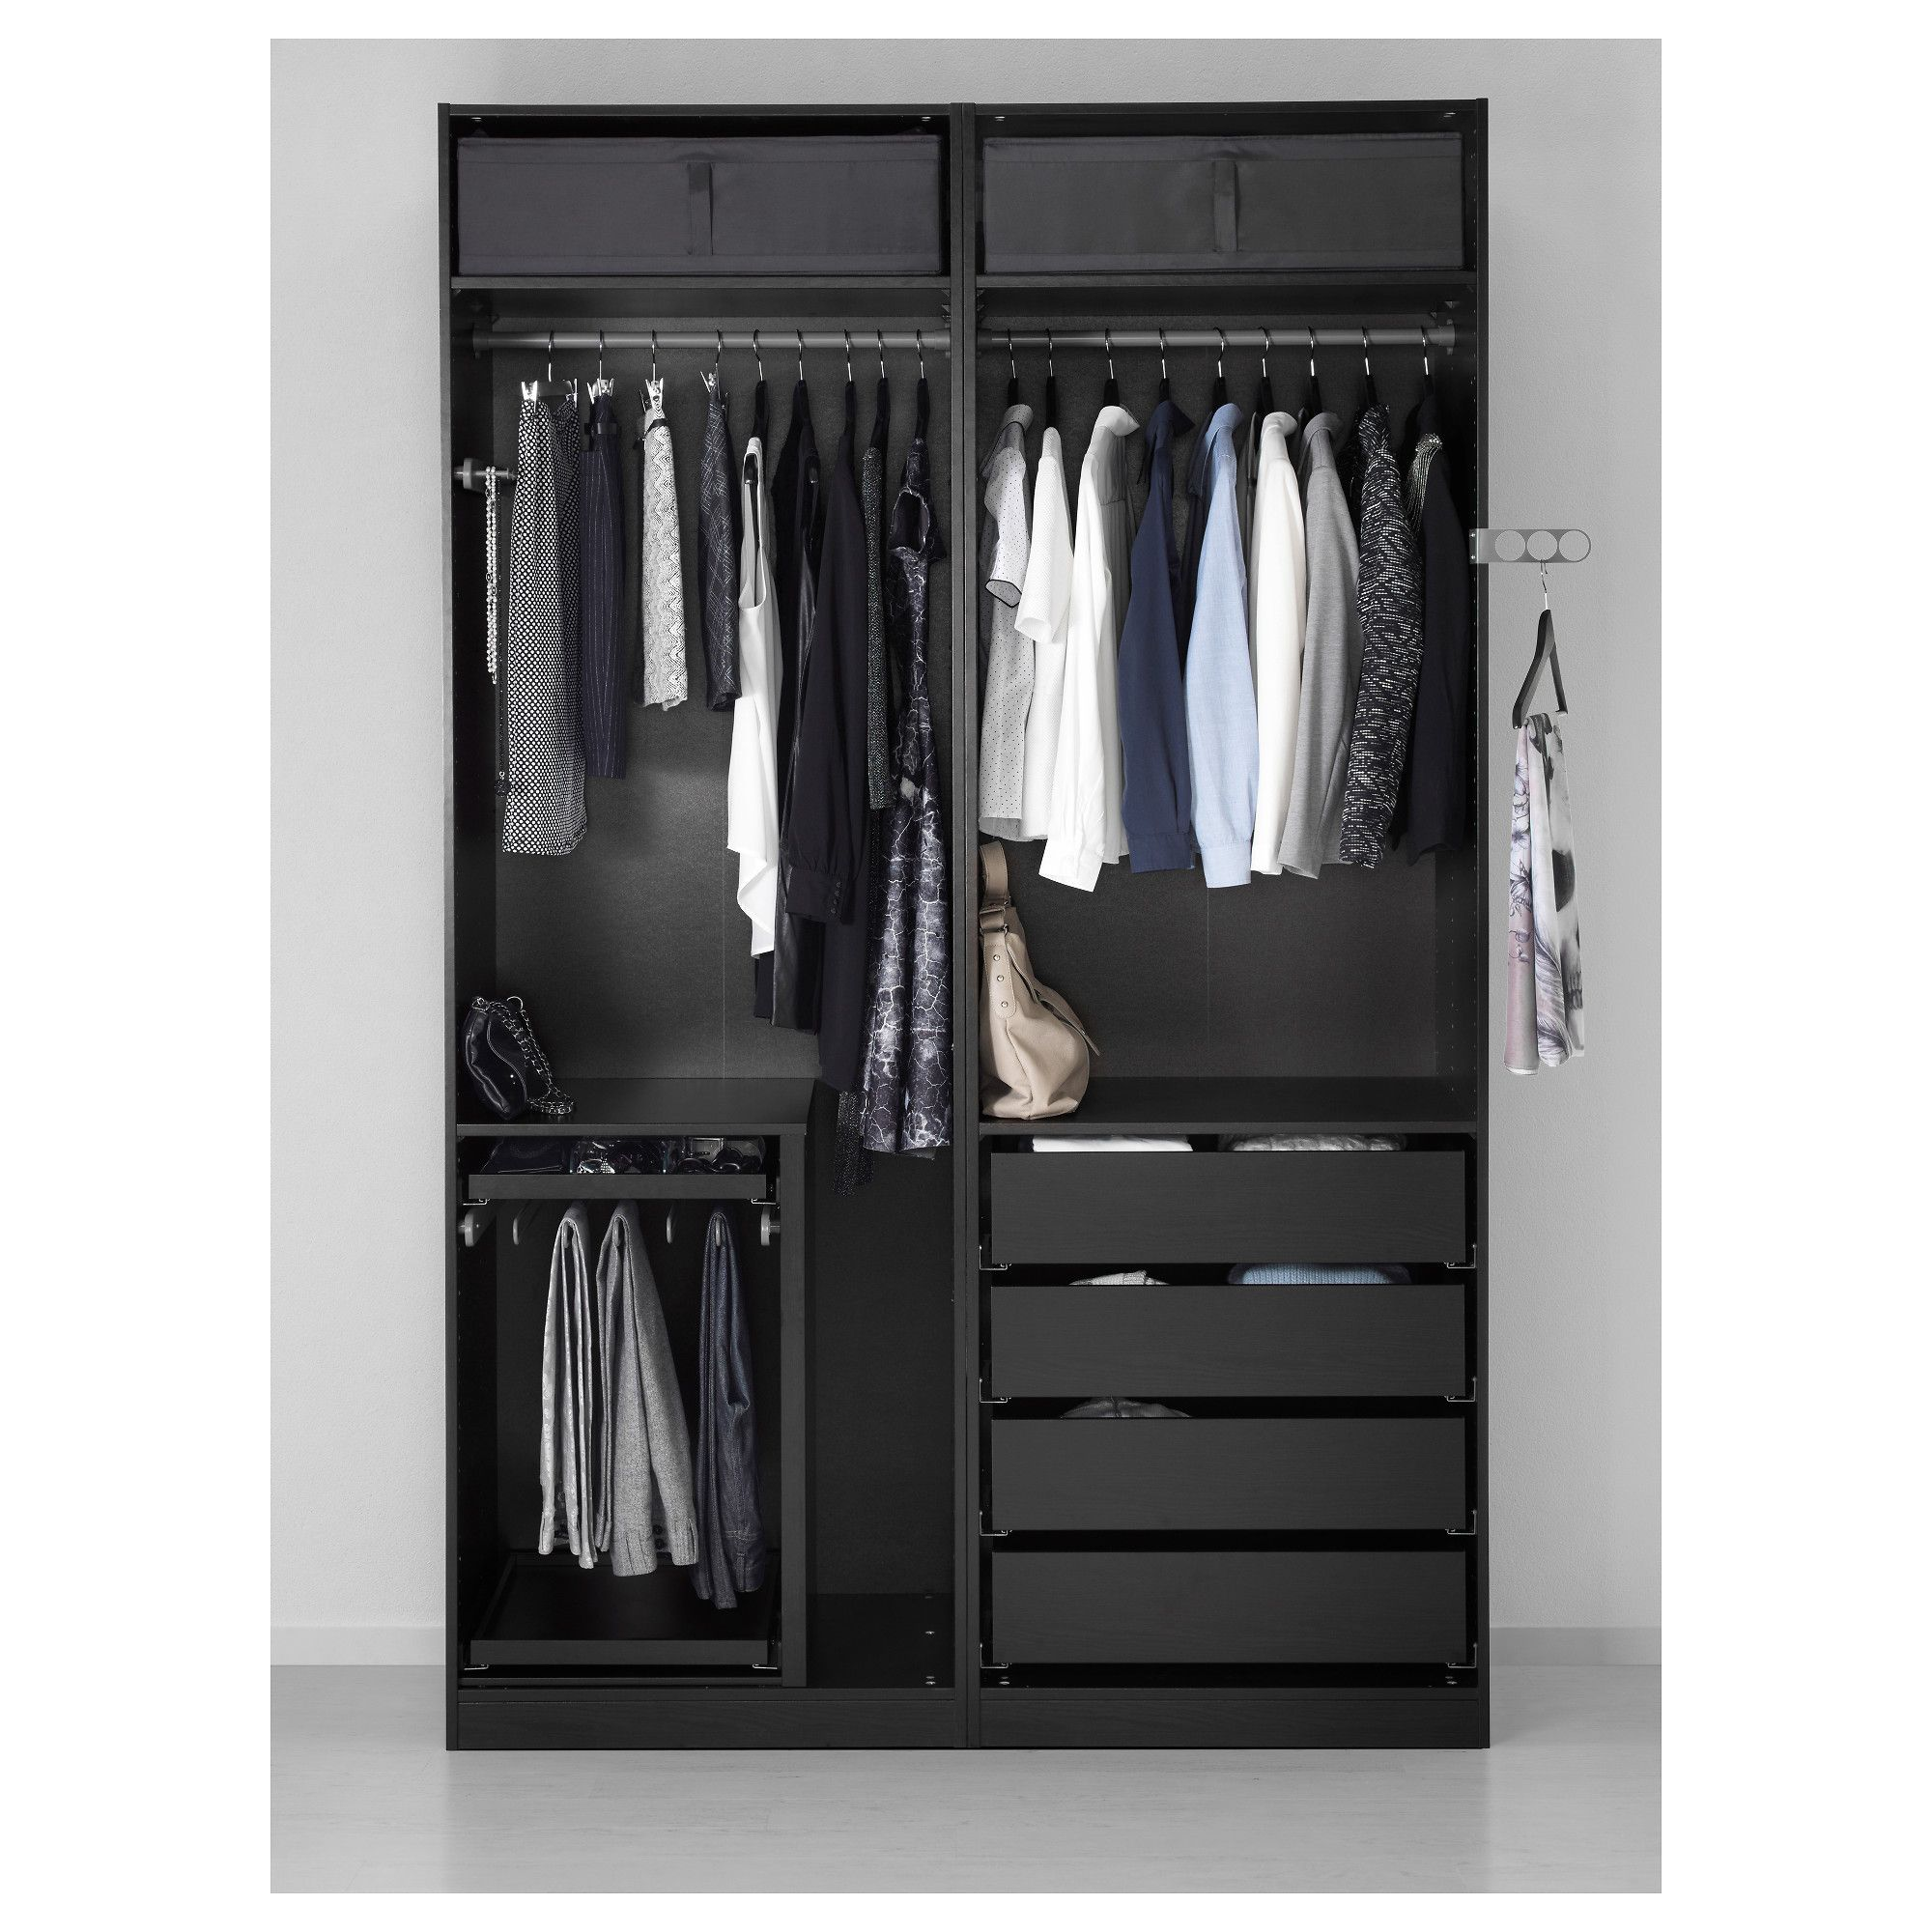 Ikea Wardrobe Valet Furniture And Home Furnishings | Closets | Pax Wardrobe